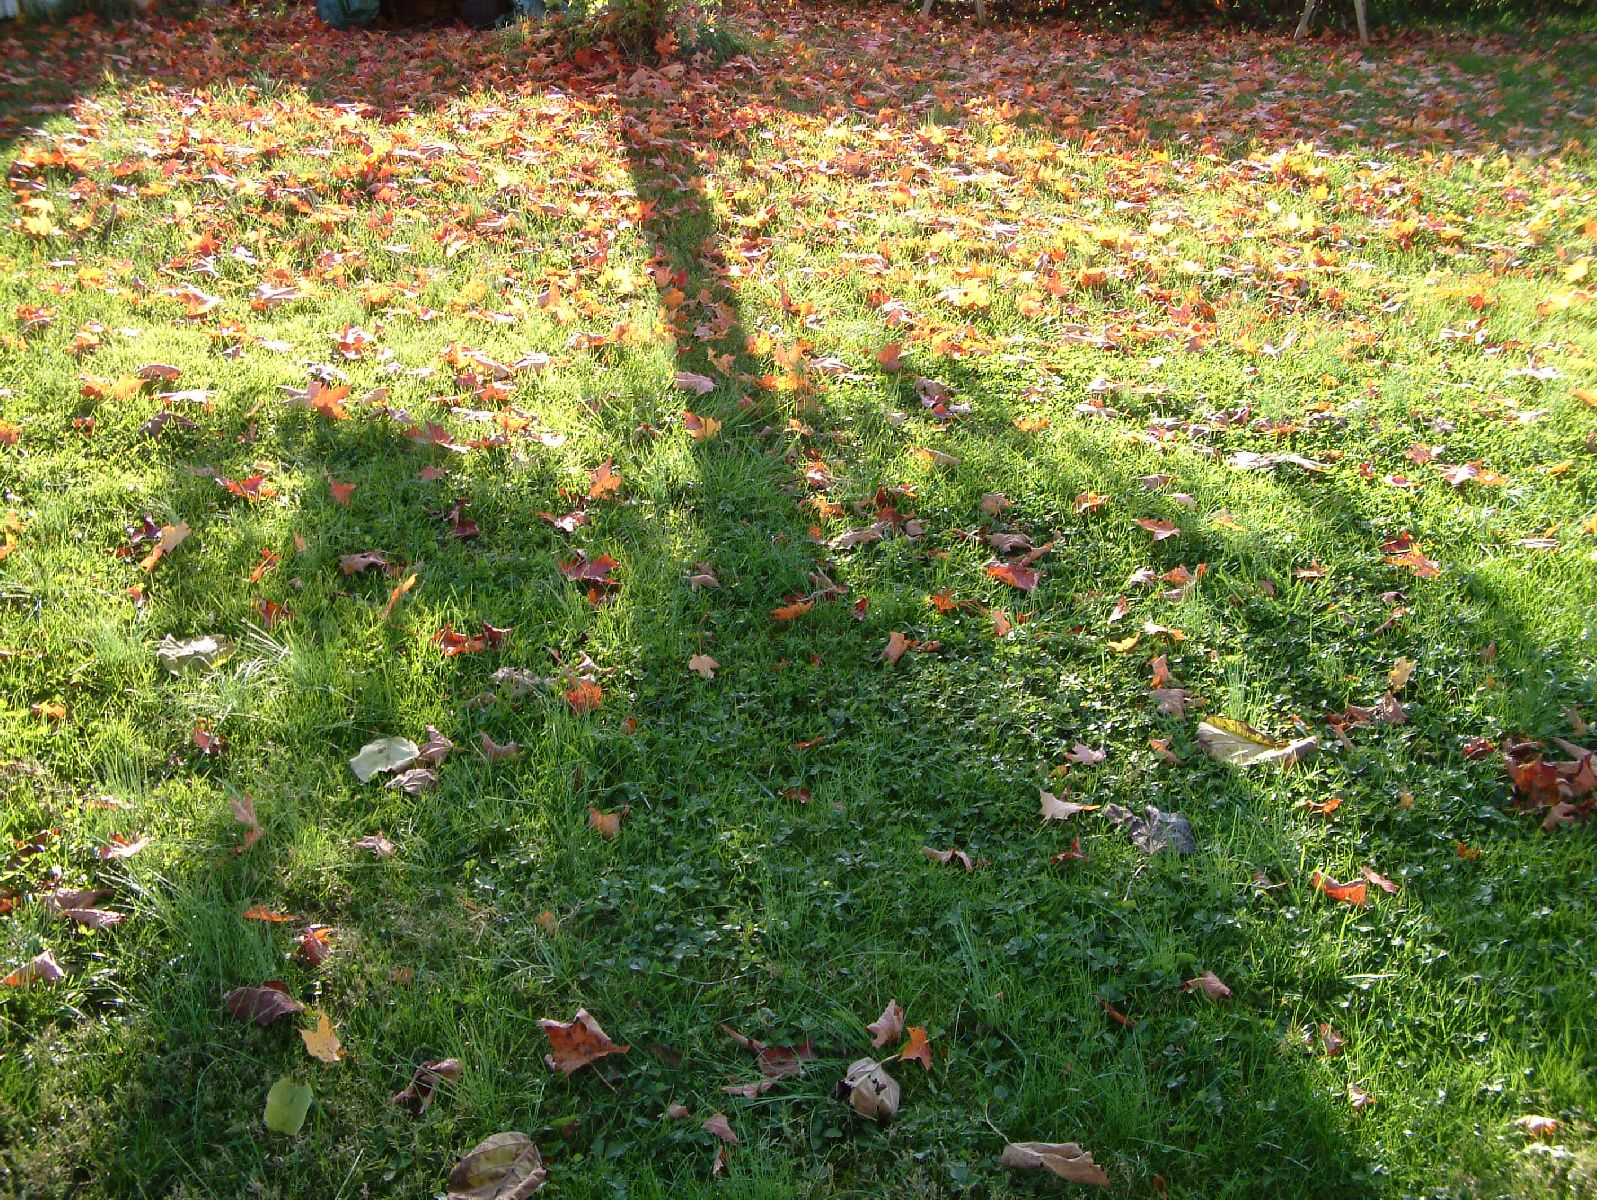 Autumn 2010 Long Shadows 2